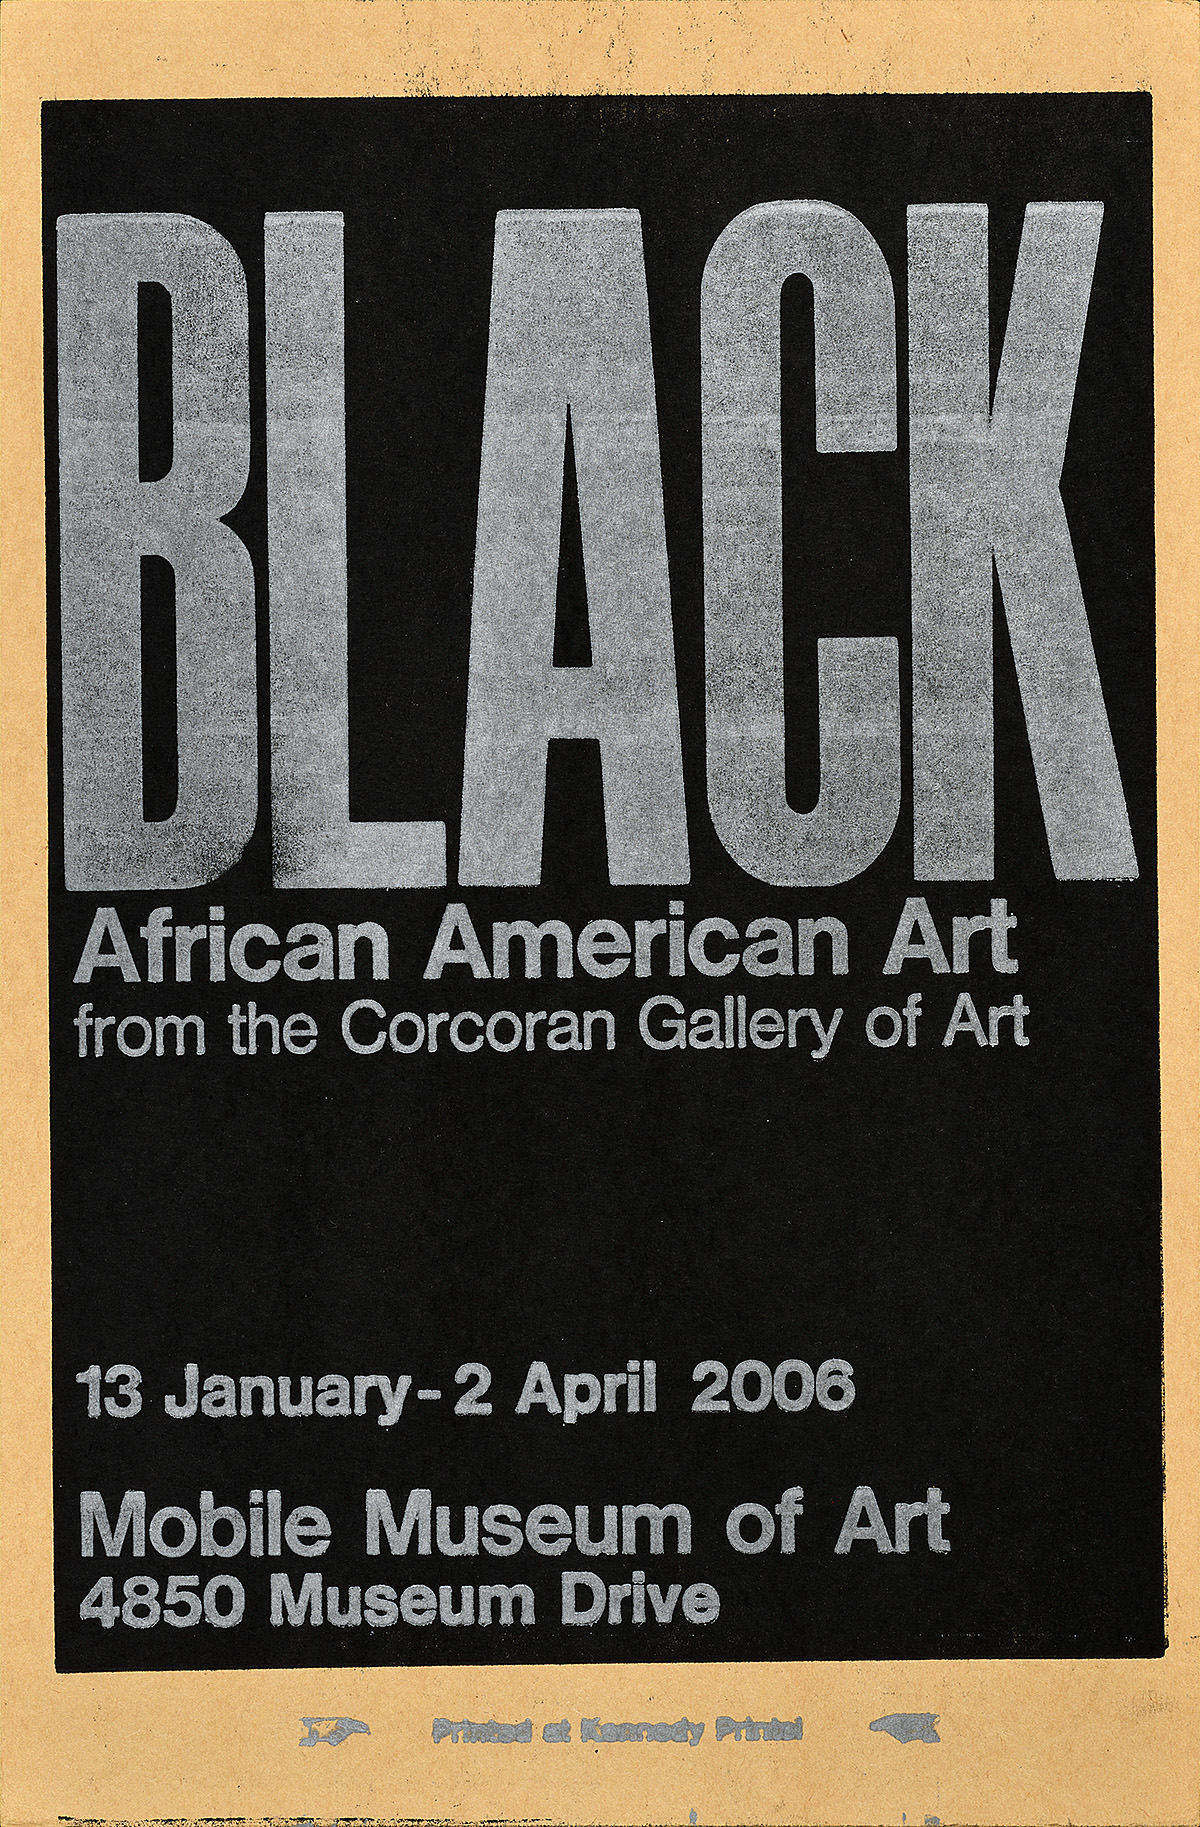 letterpress poster with a dark black background. In silver, a quote is printed on top saying Black African American Art .